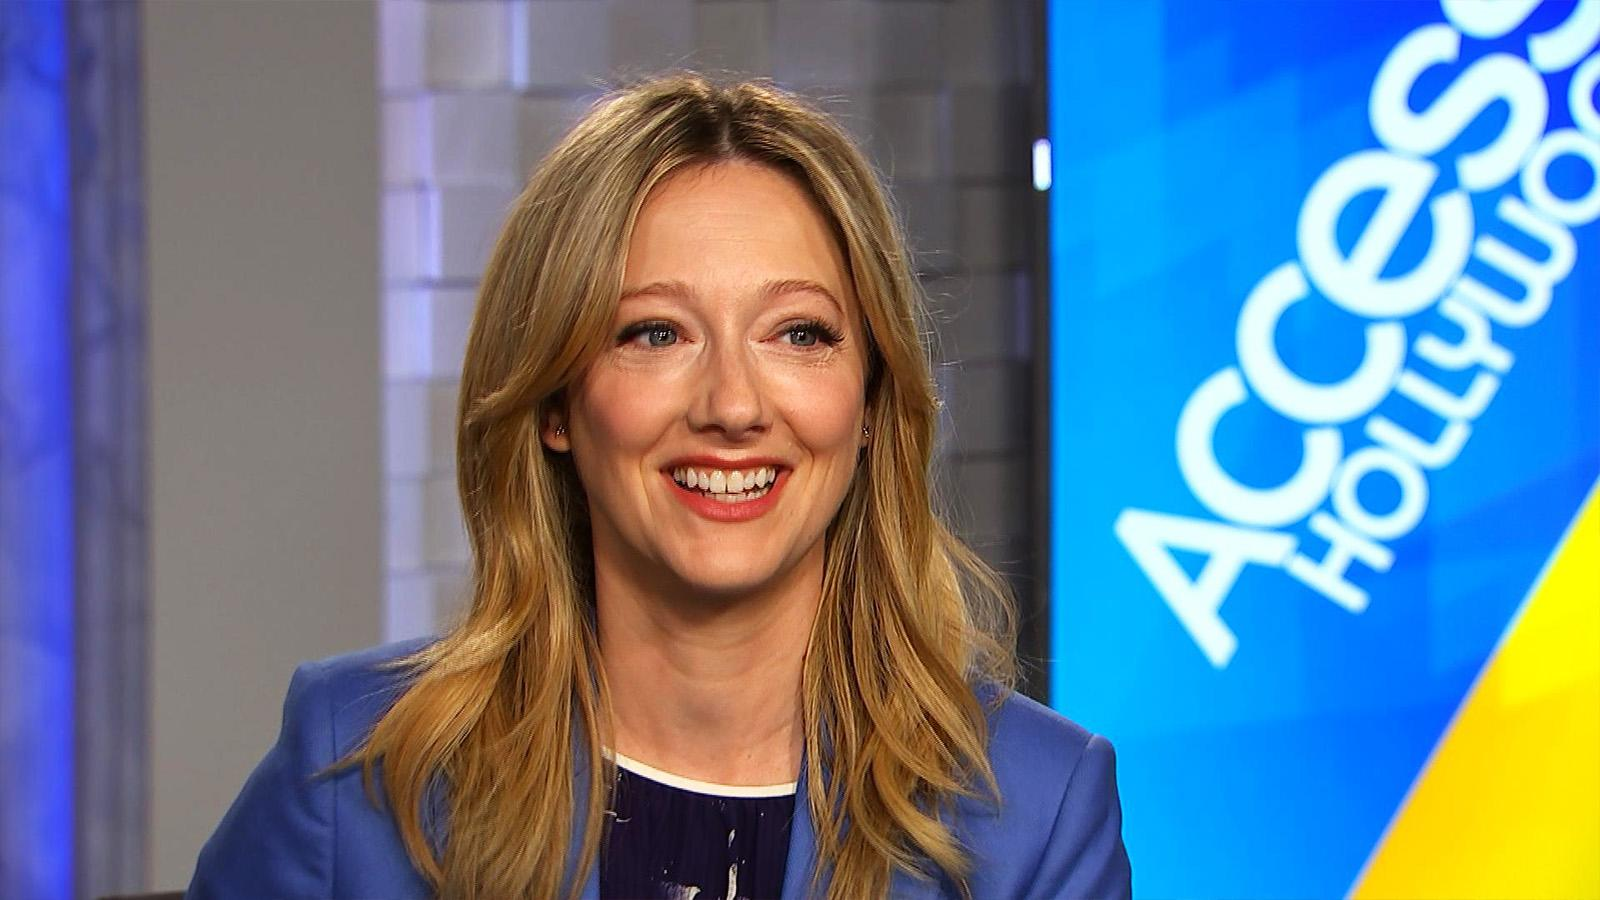 Judy Greer's Texting Lesson From Jennifer Garner